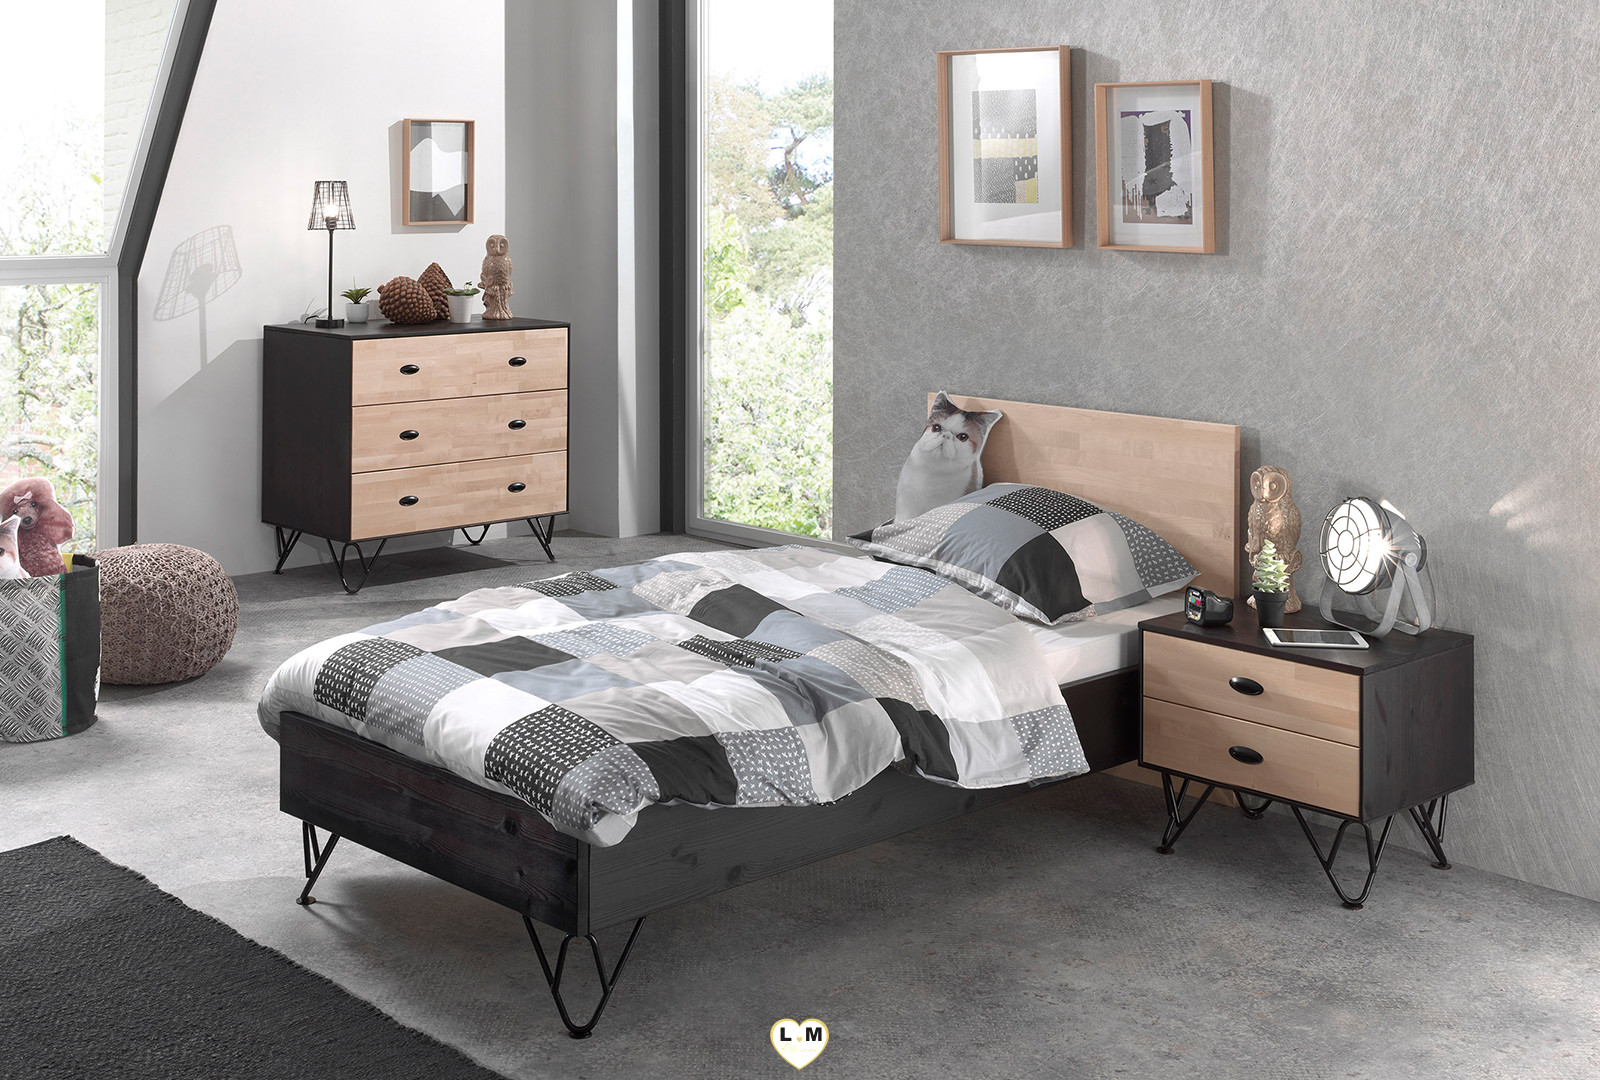 willy chambre ado la commode lignemeuble com. Black Bedroom Furniture Sets. Home Design Ideas